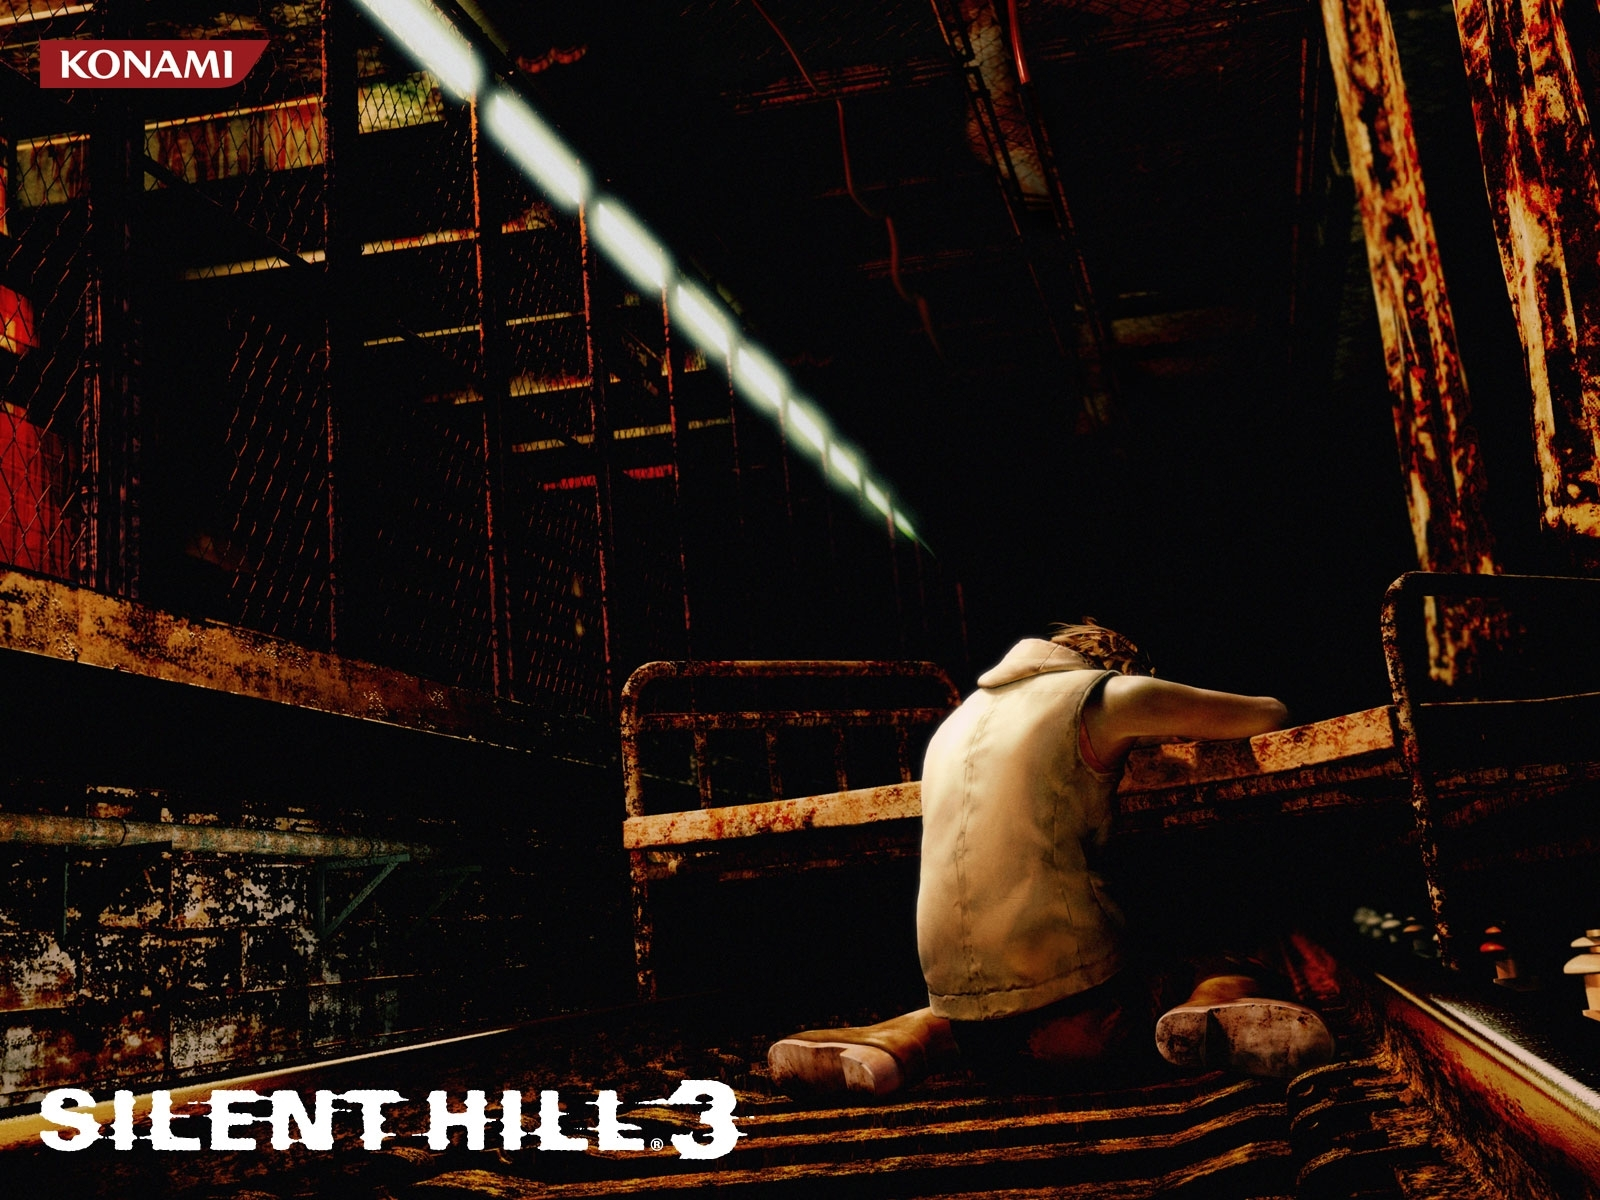 silent hill 3 wallpapers - silent hill memories